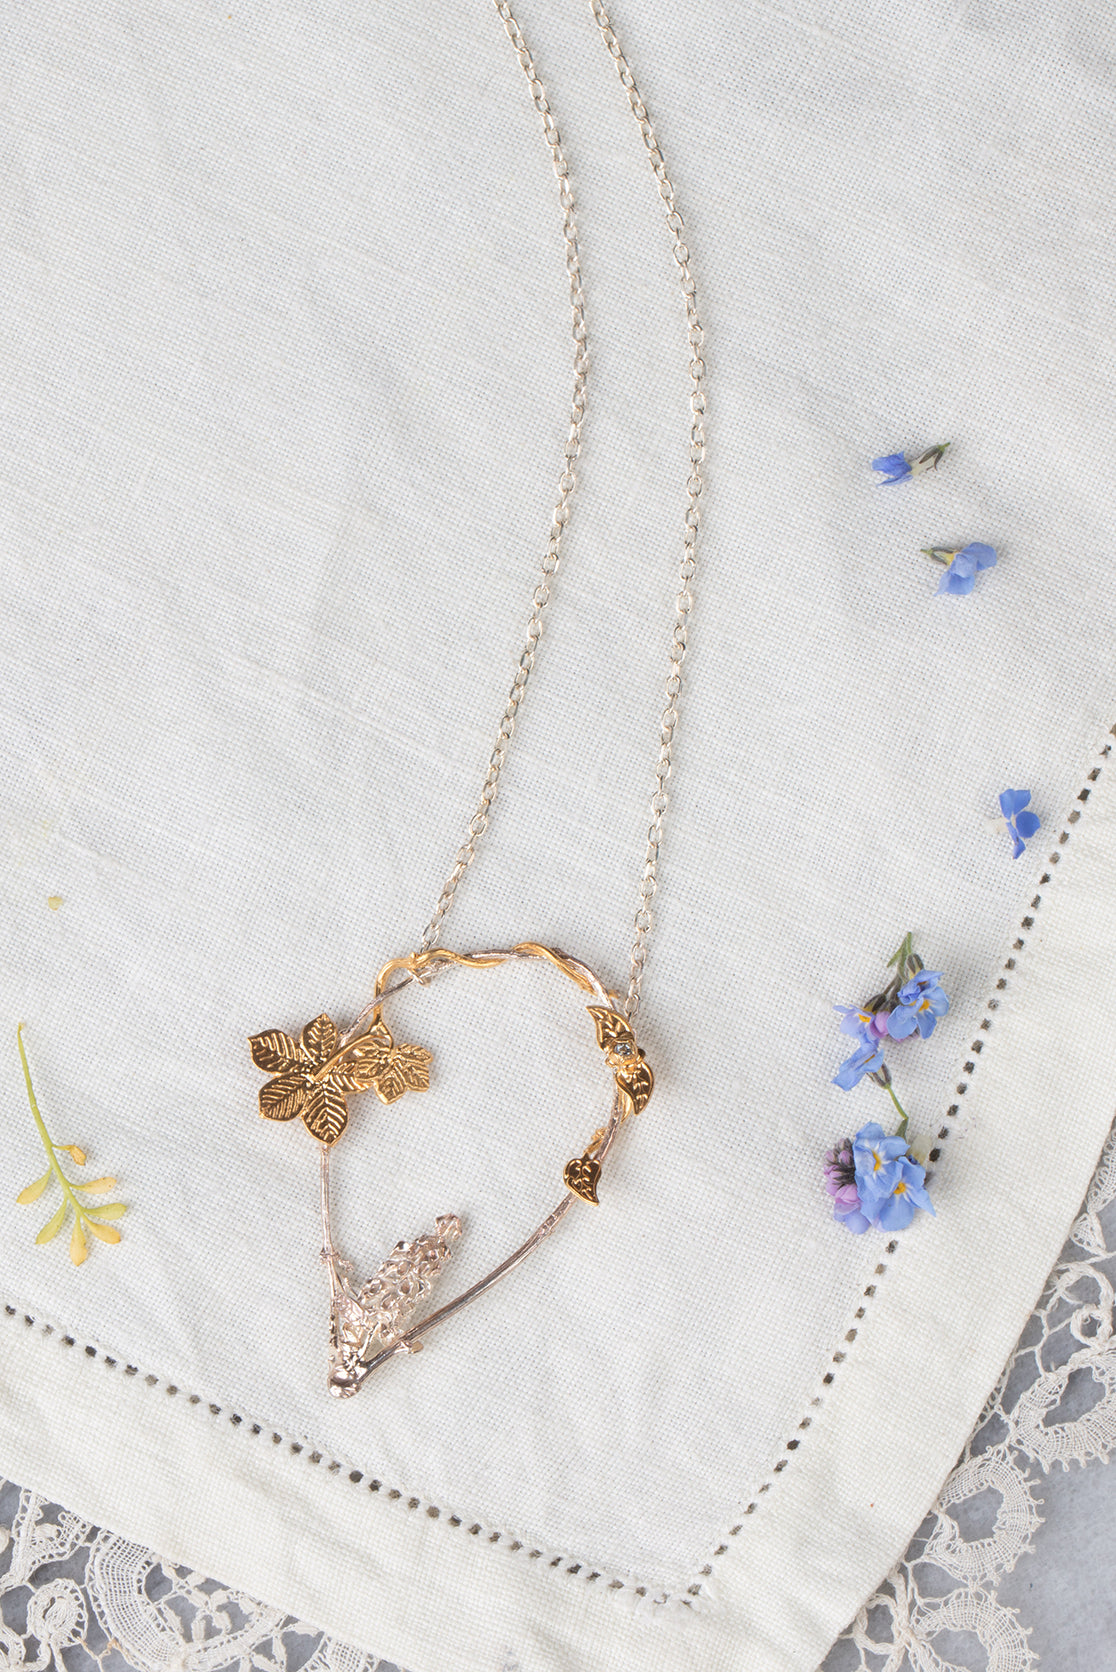 foxglove flower necklace